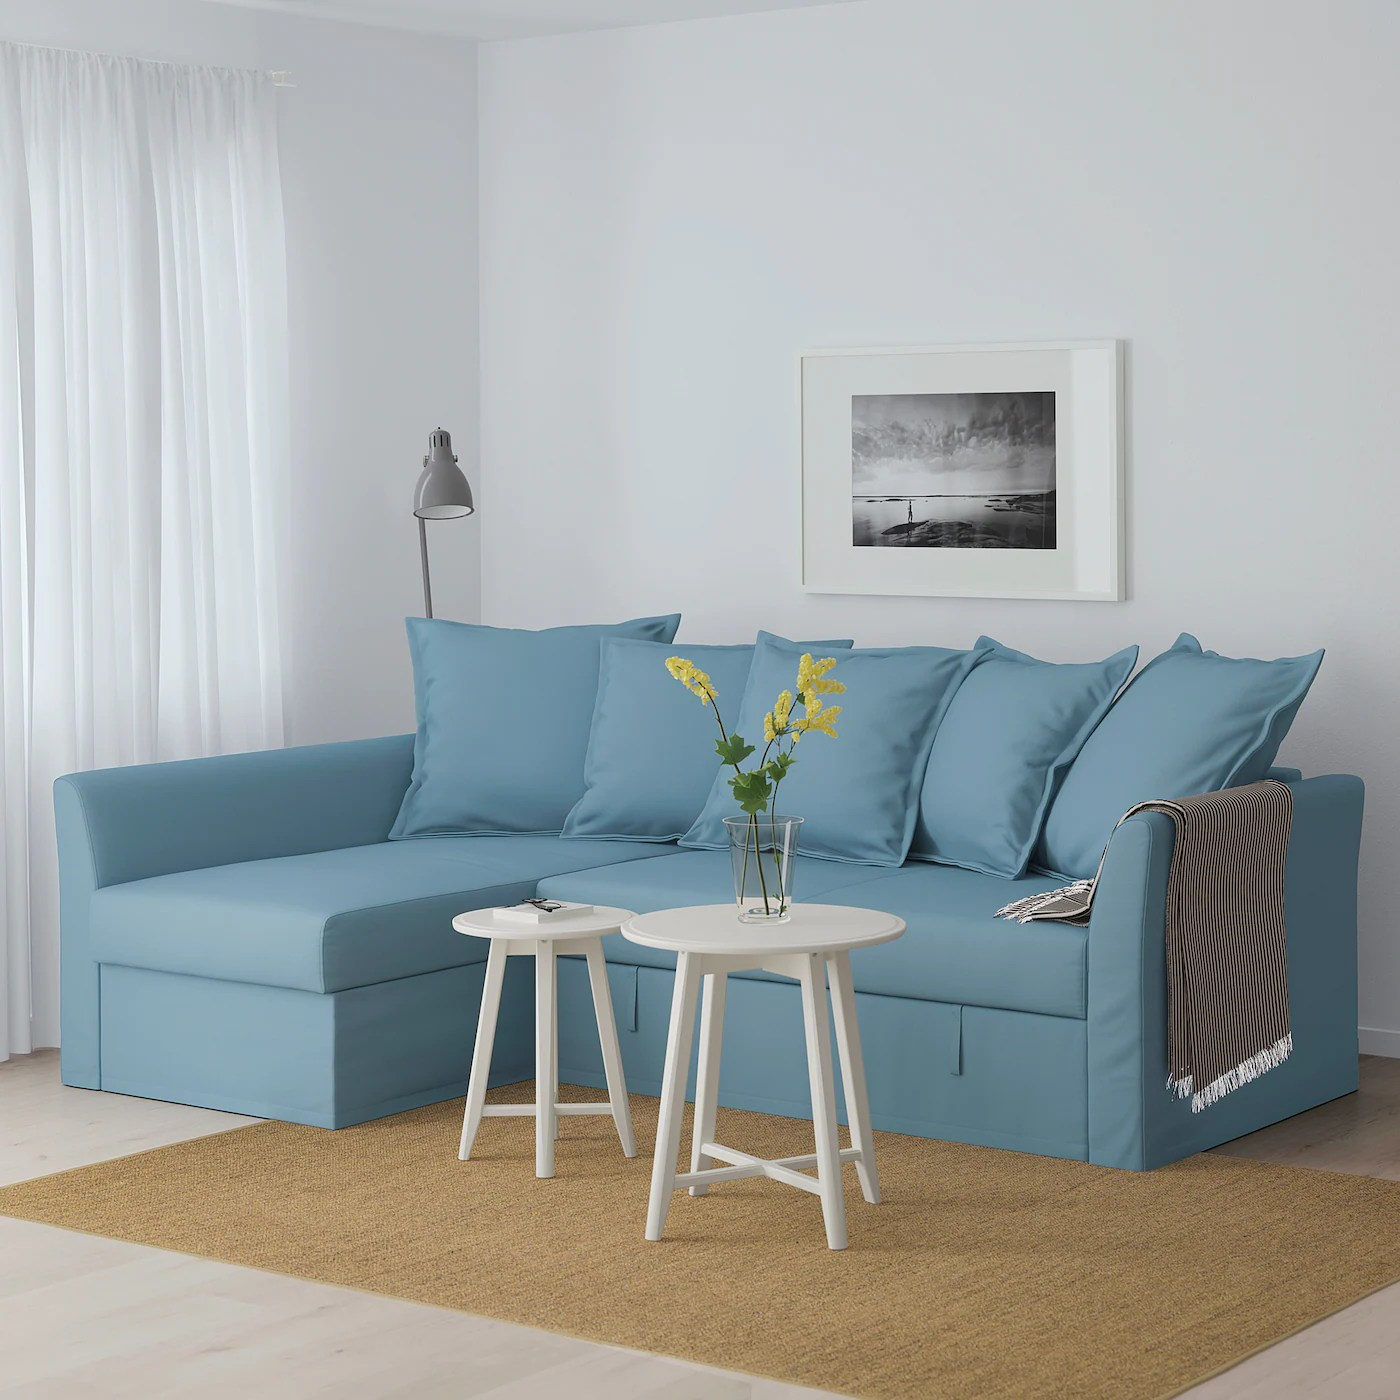 Sofas Und Couches Holmsund Gräsbo Light Blue, Corner Sofa-bed - Ikea